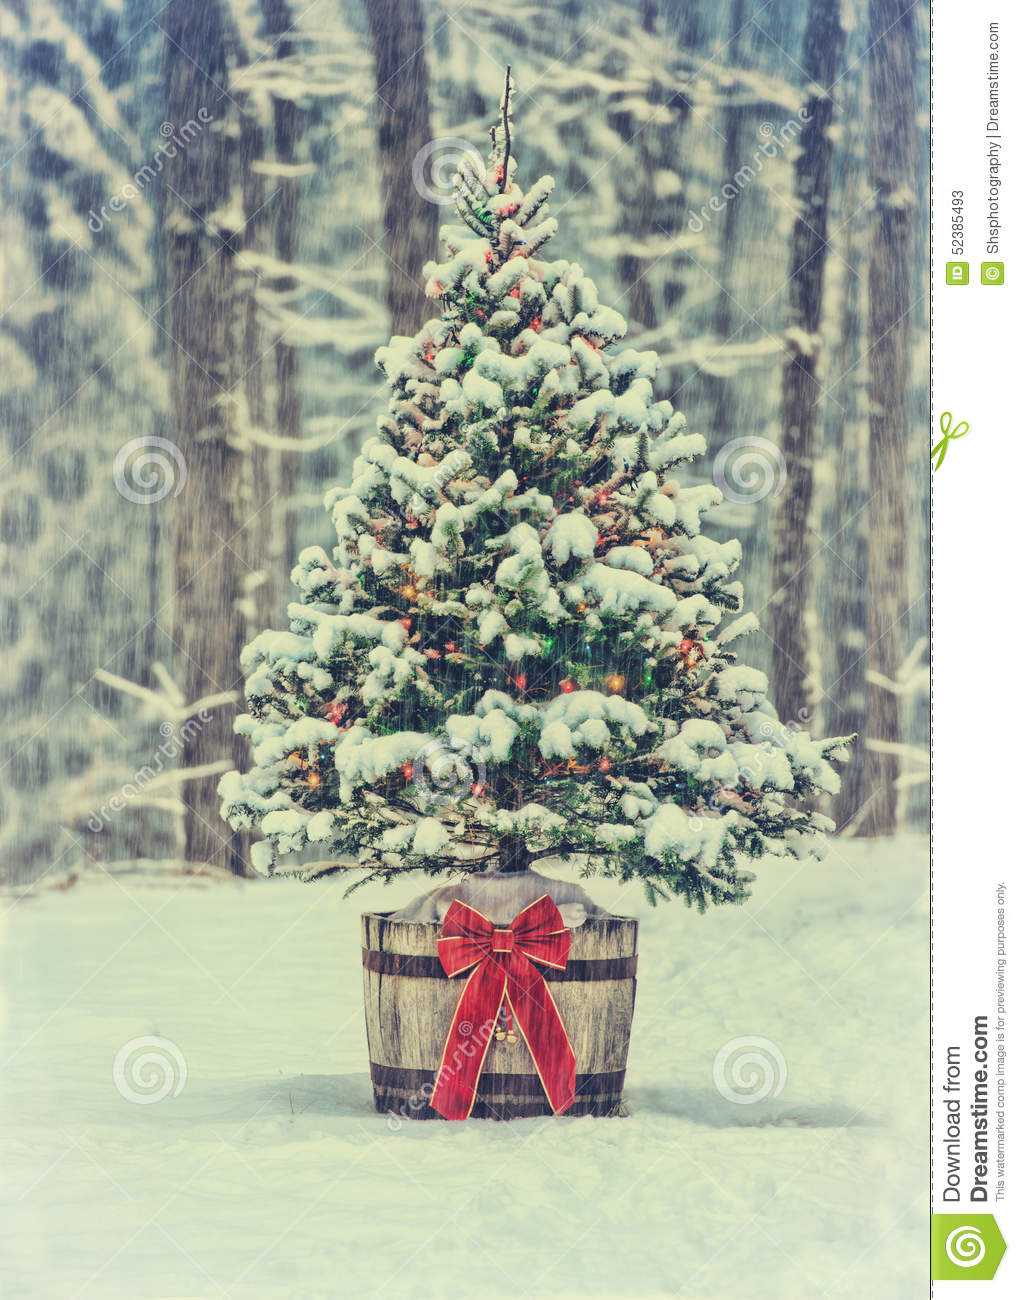 Snowy Christmas Tree With Colorful Lights In A Forest - Vintage ...